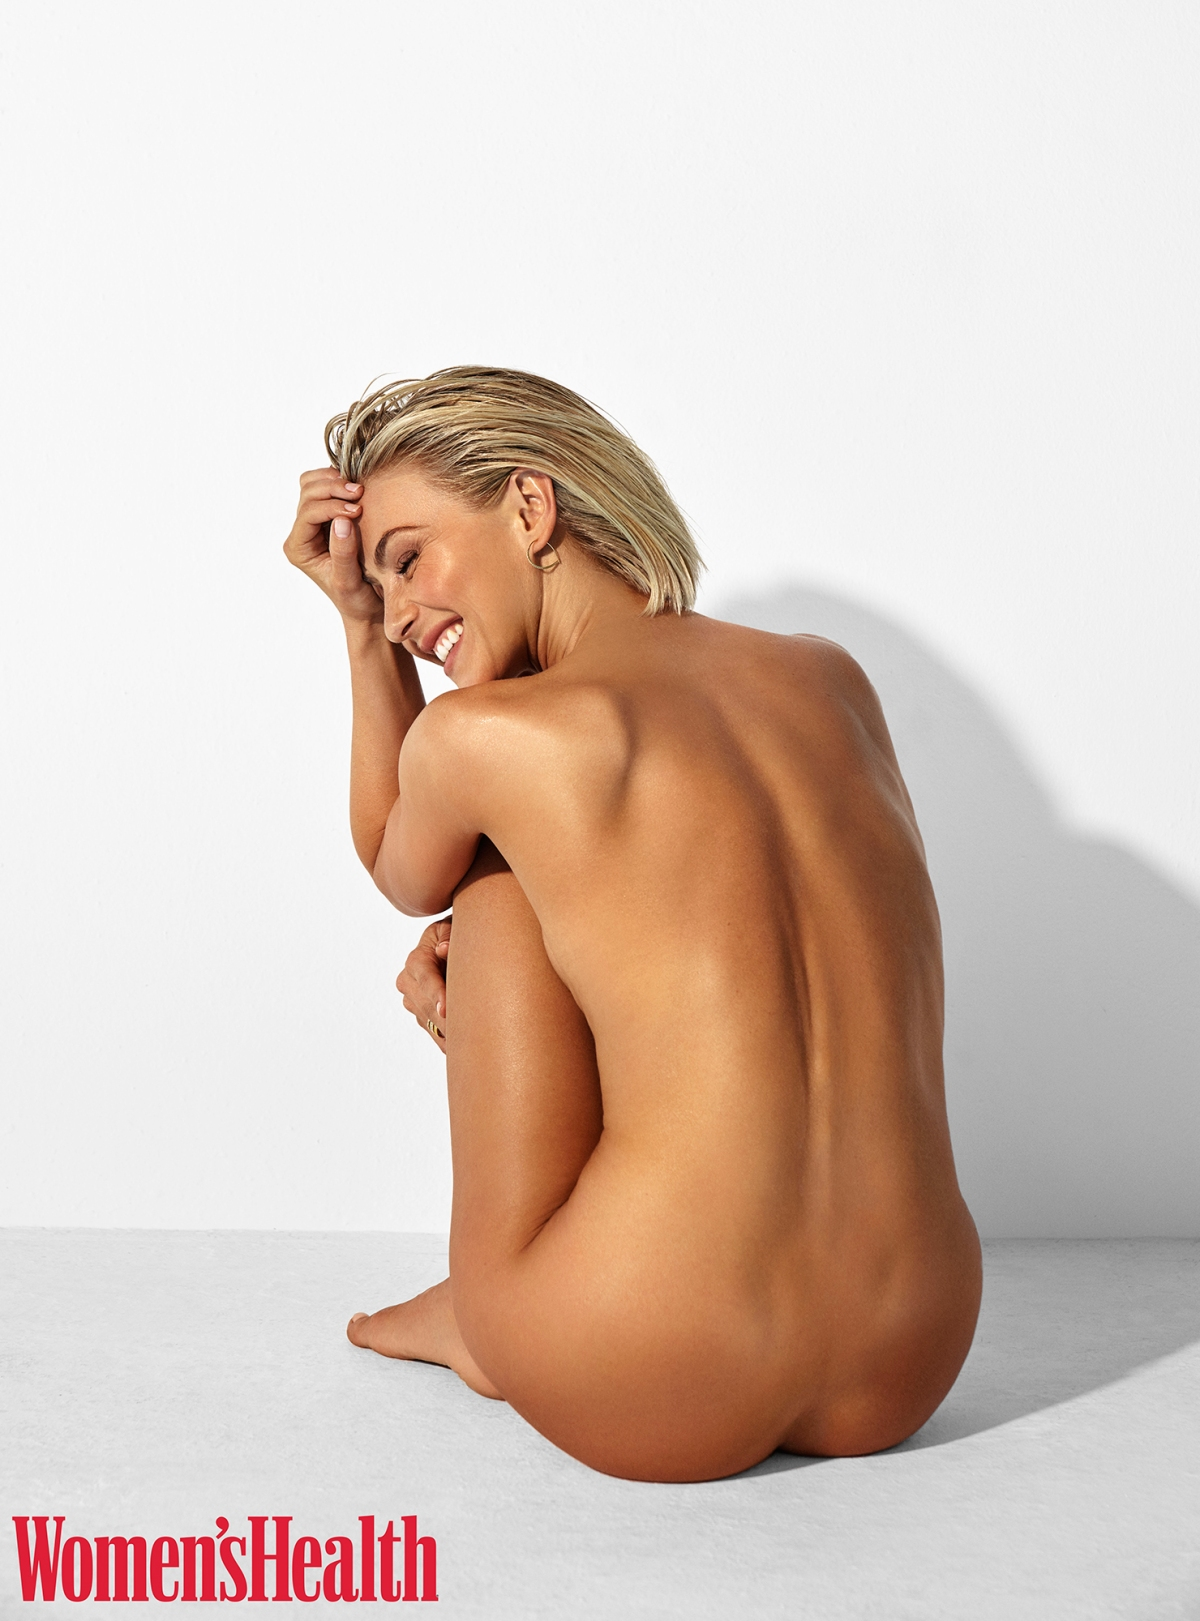 American Idol Nude Photos julianne hough nude on women's health cover: 'naked strength